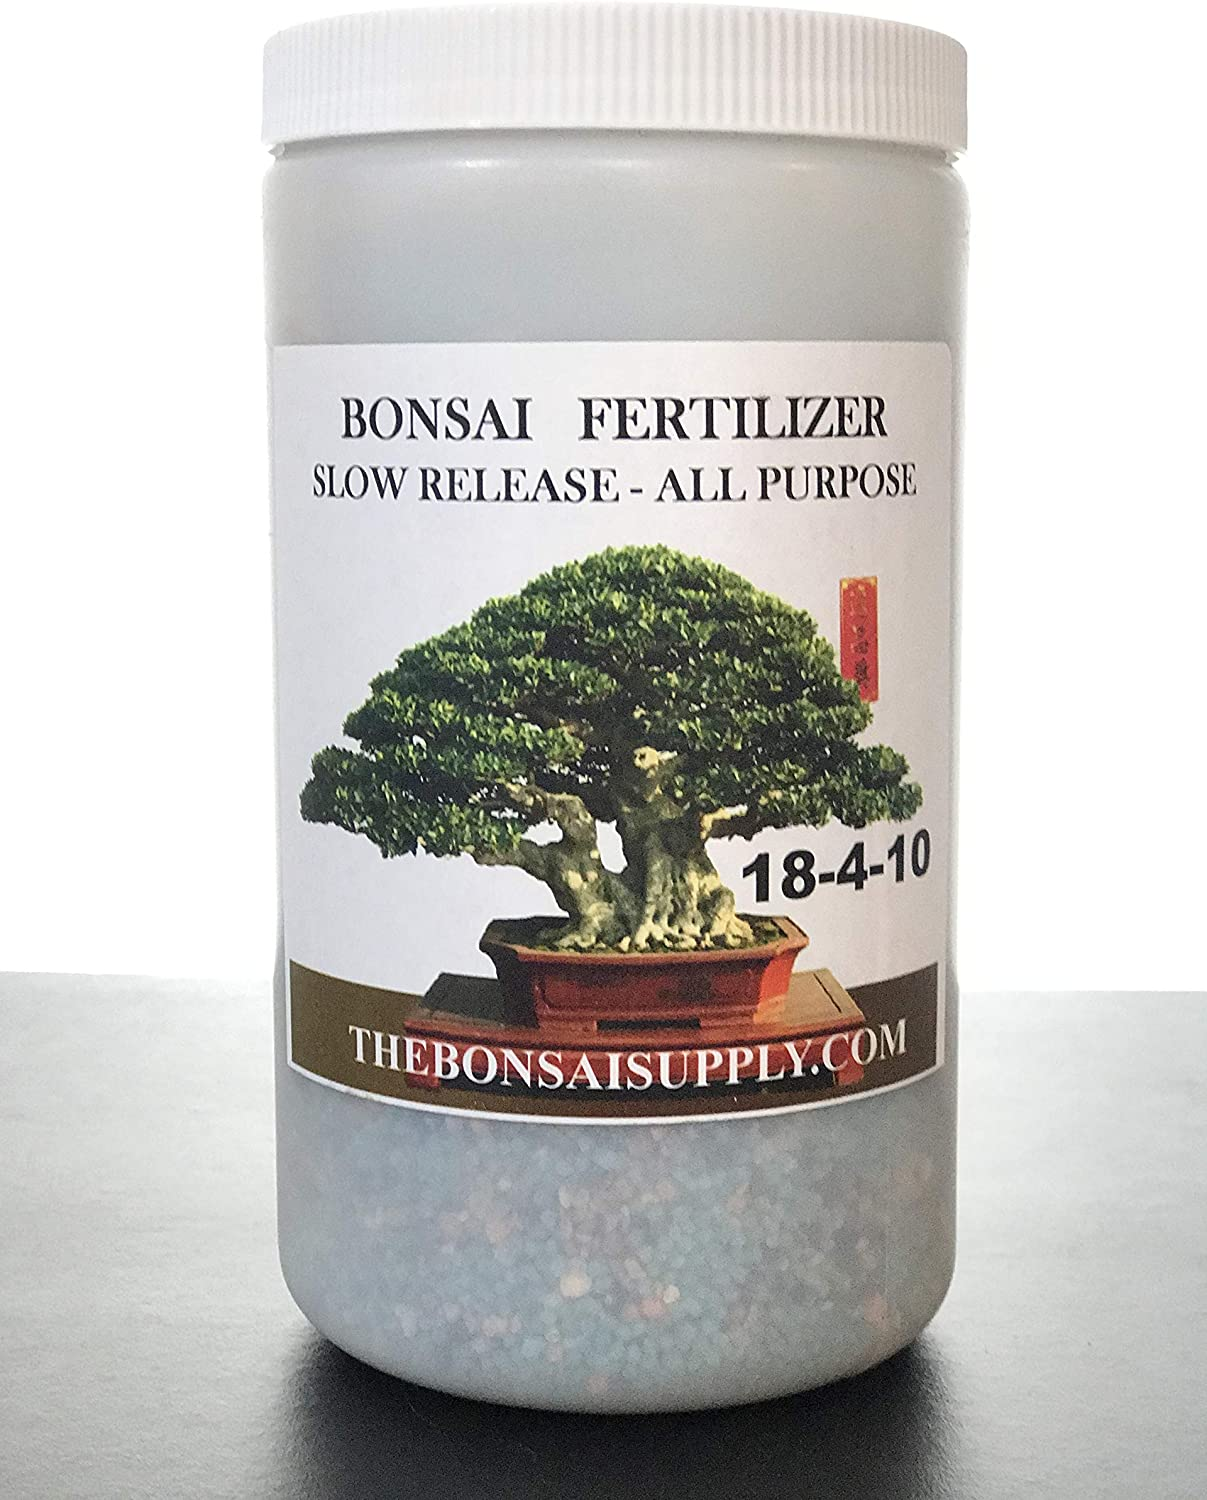 Amazon Com Bonsai Tree Fertilizer 2 4 Lb Jar Tons Of Micro Nutrients Vital For Bonsai Health Slow Release Apply Every 30 Days All Purpose Fertilizer All Purpose Fertilizer Garden Outdoor